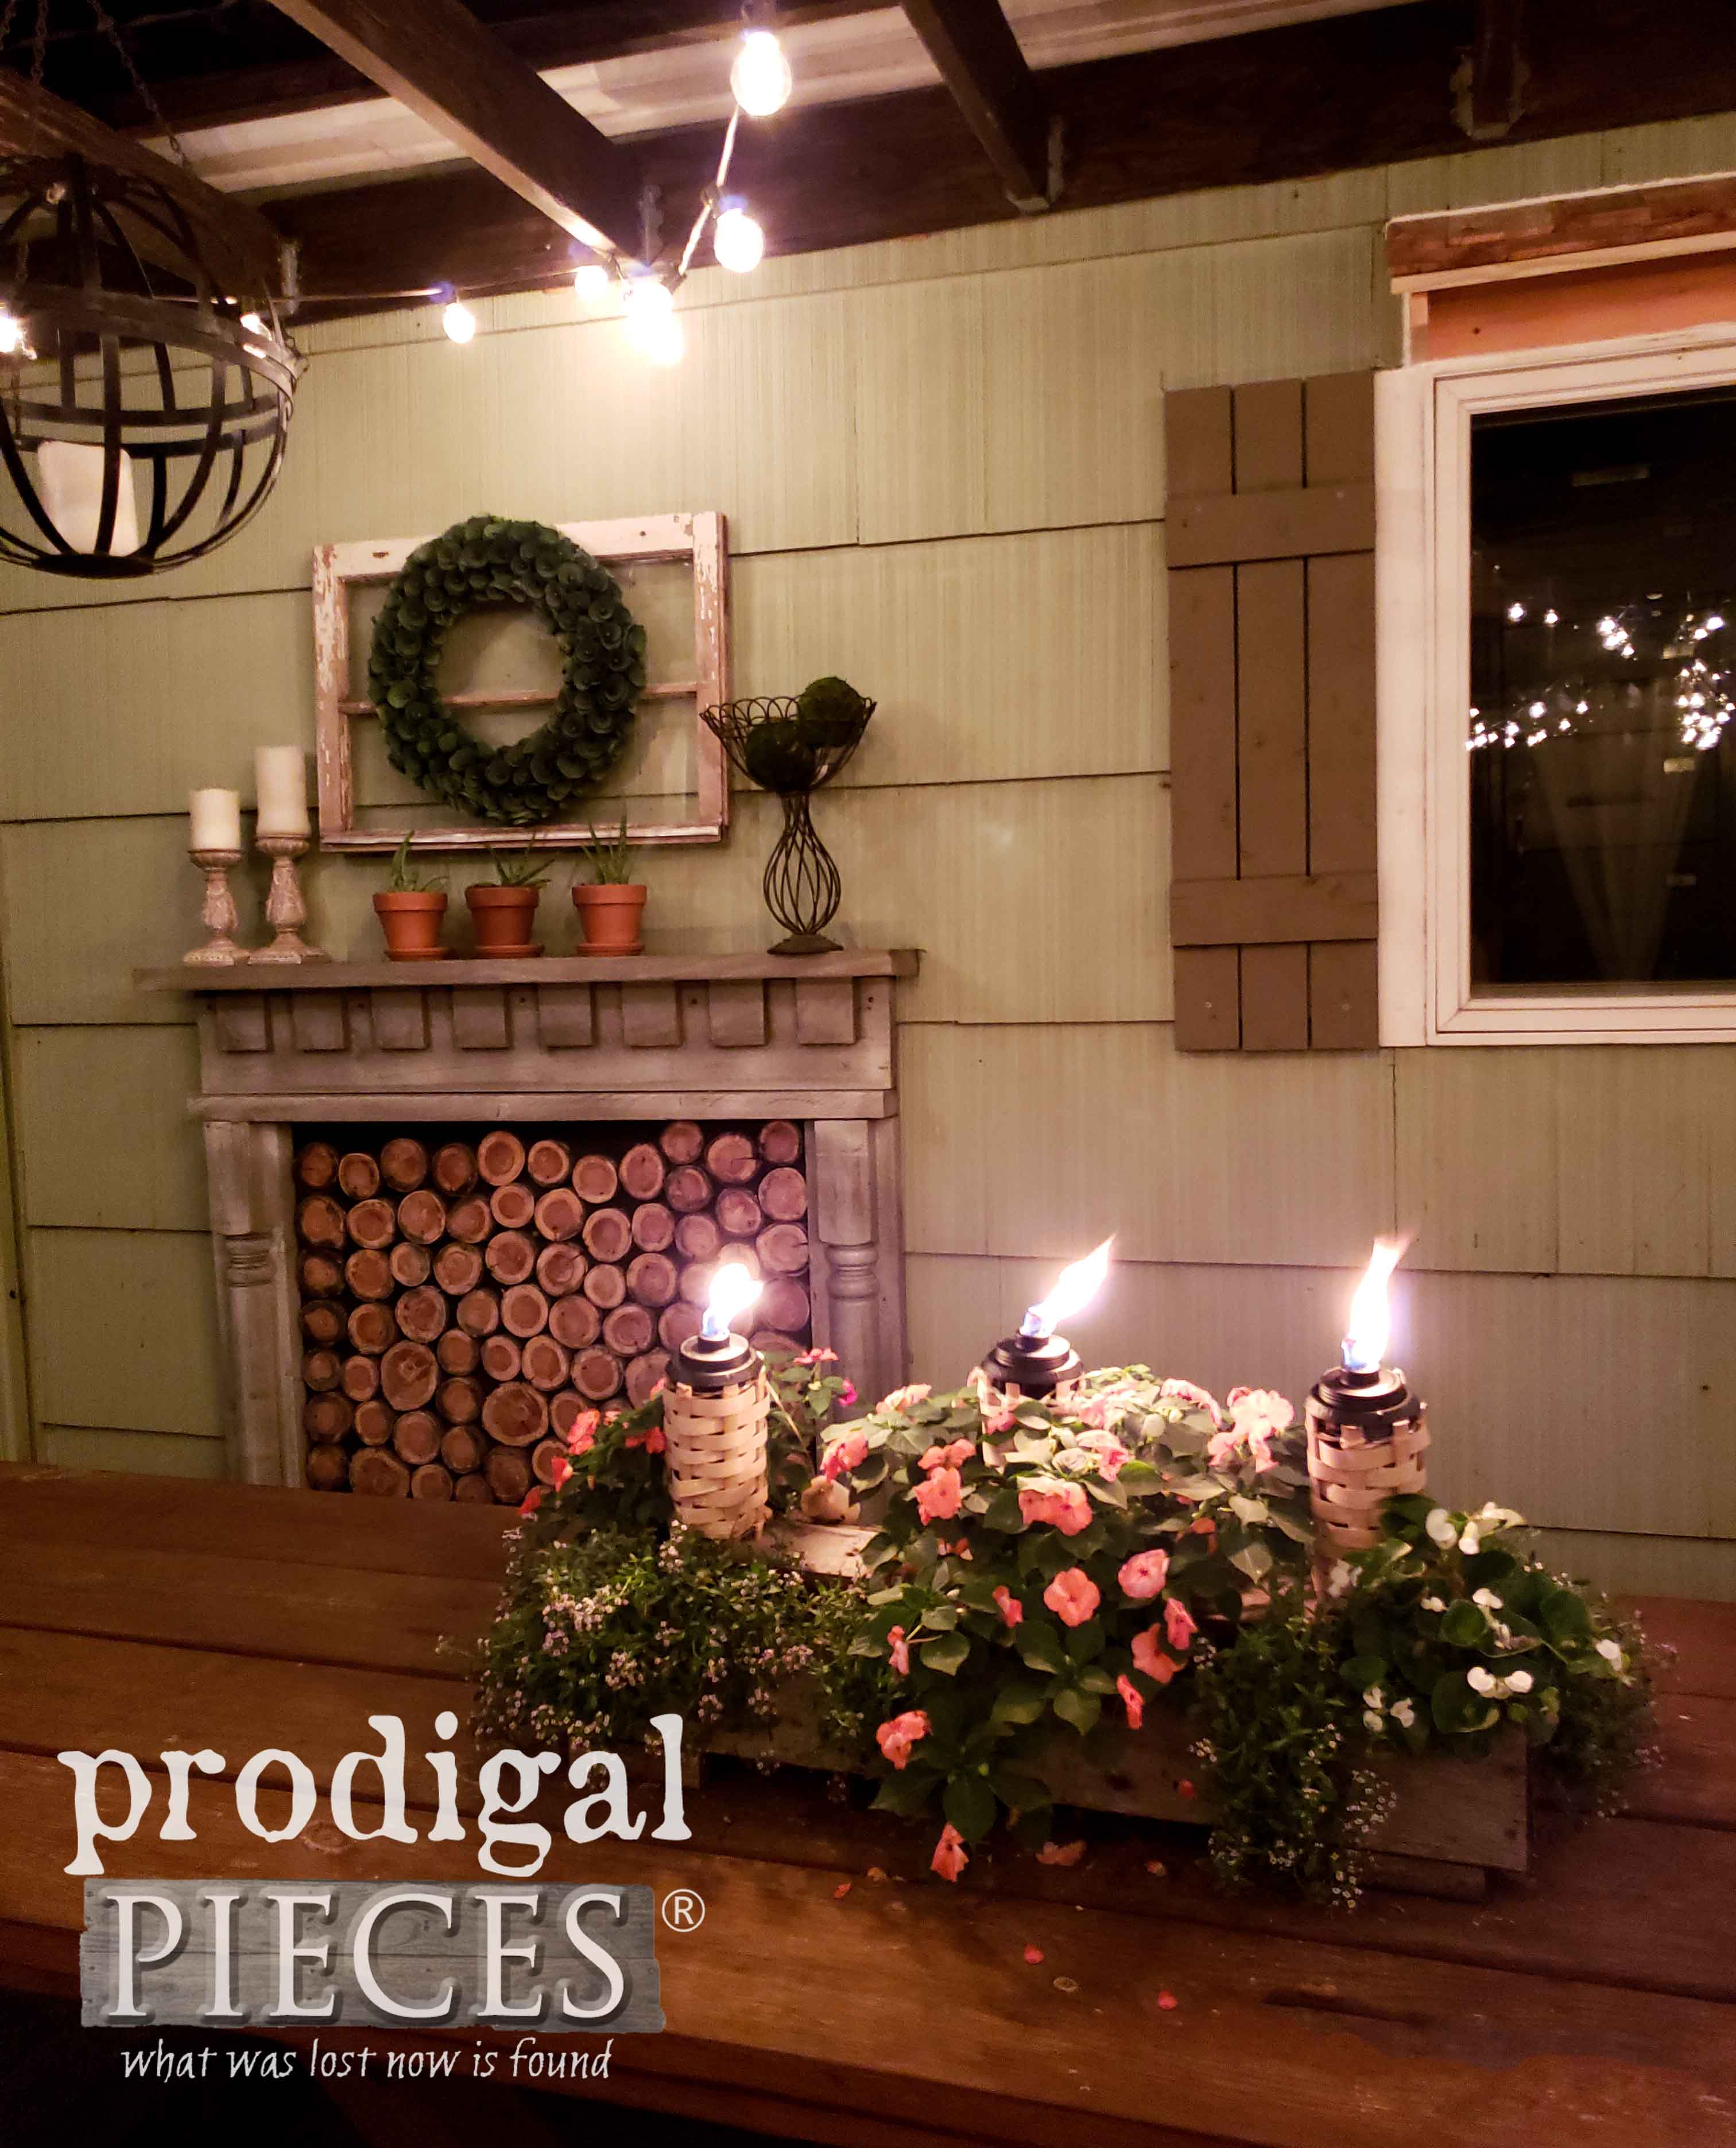 Outdoor Patio Night Dining Area with DIY Decor by Prodigal Pieces | prodigalpieces.com